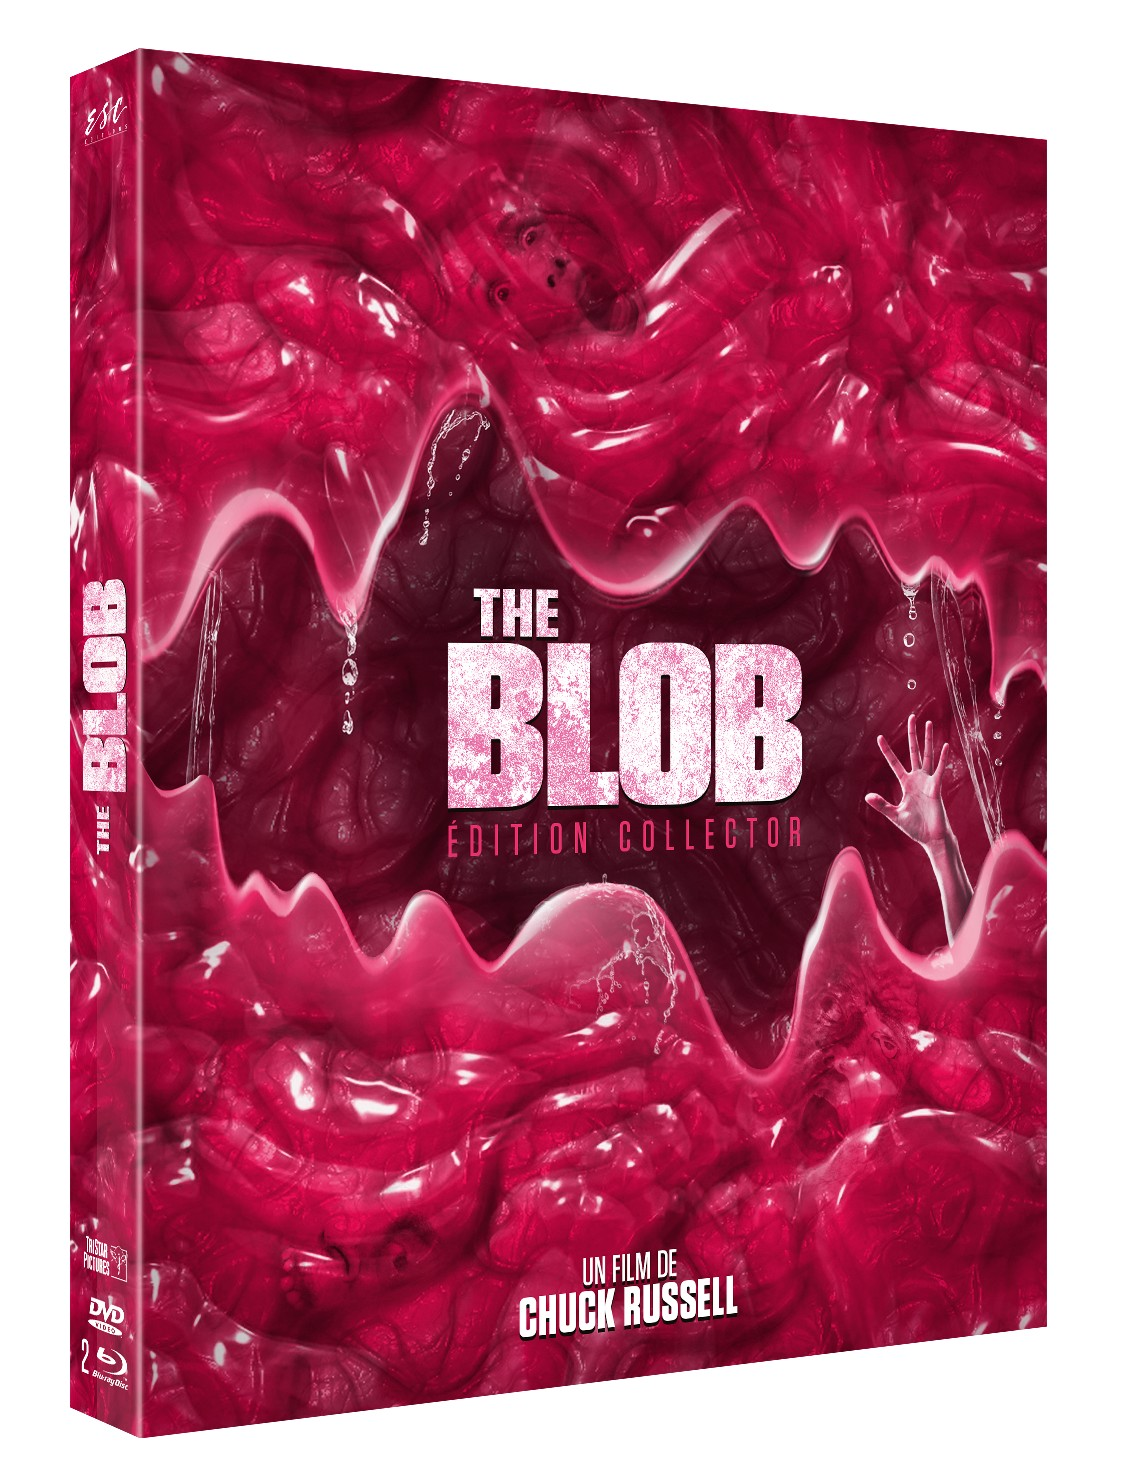 THE BLOB 1988 - EDITION COLLECTOR LIMITEE